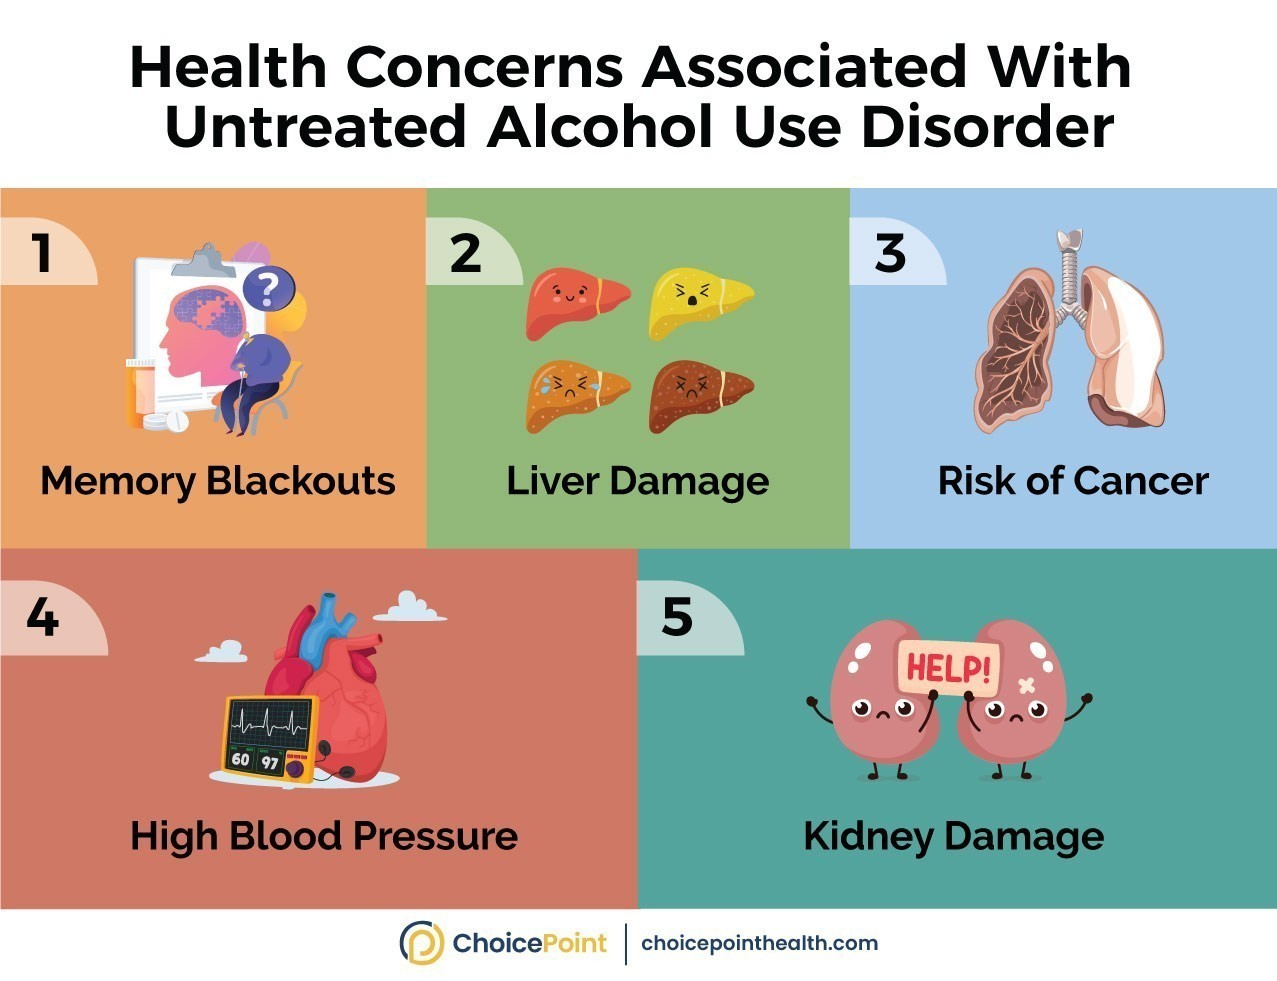 Understand the Health Concerns of Untreated Alcohol Use Disorder